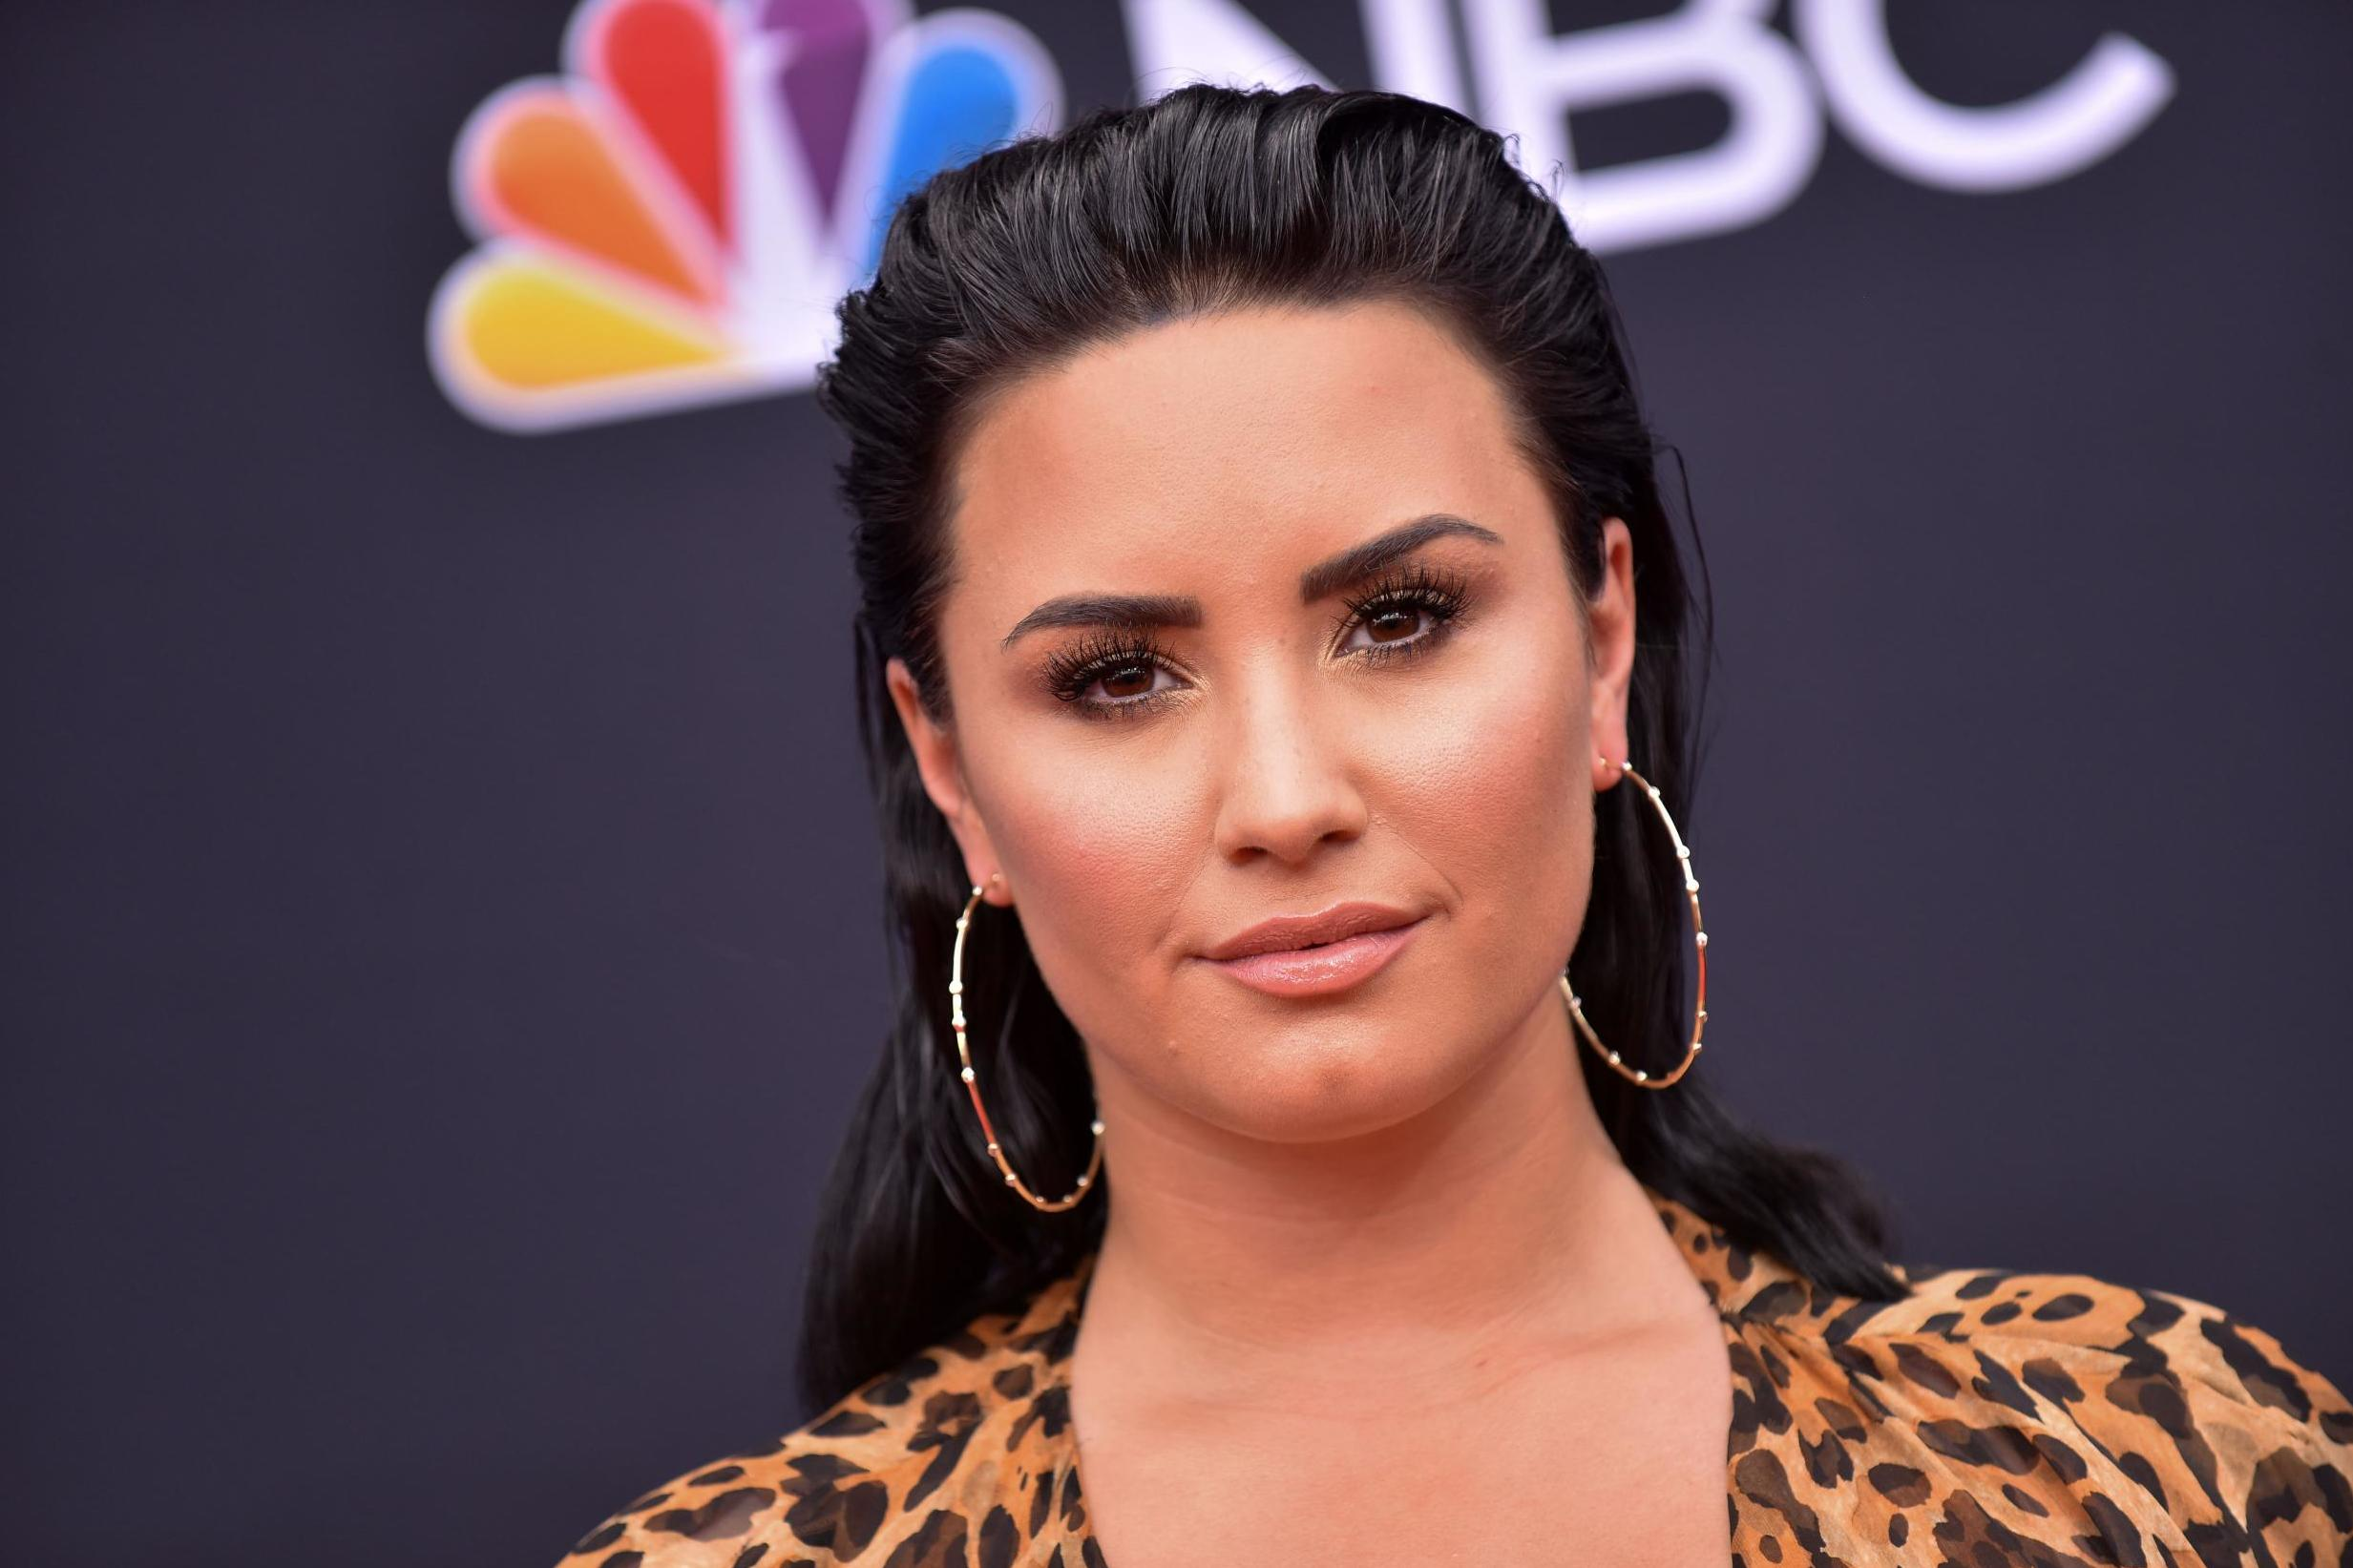 Demi Lovato says she's 'devastated' following the death of her friend: 'Addiction is no joke'